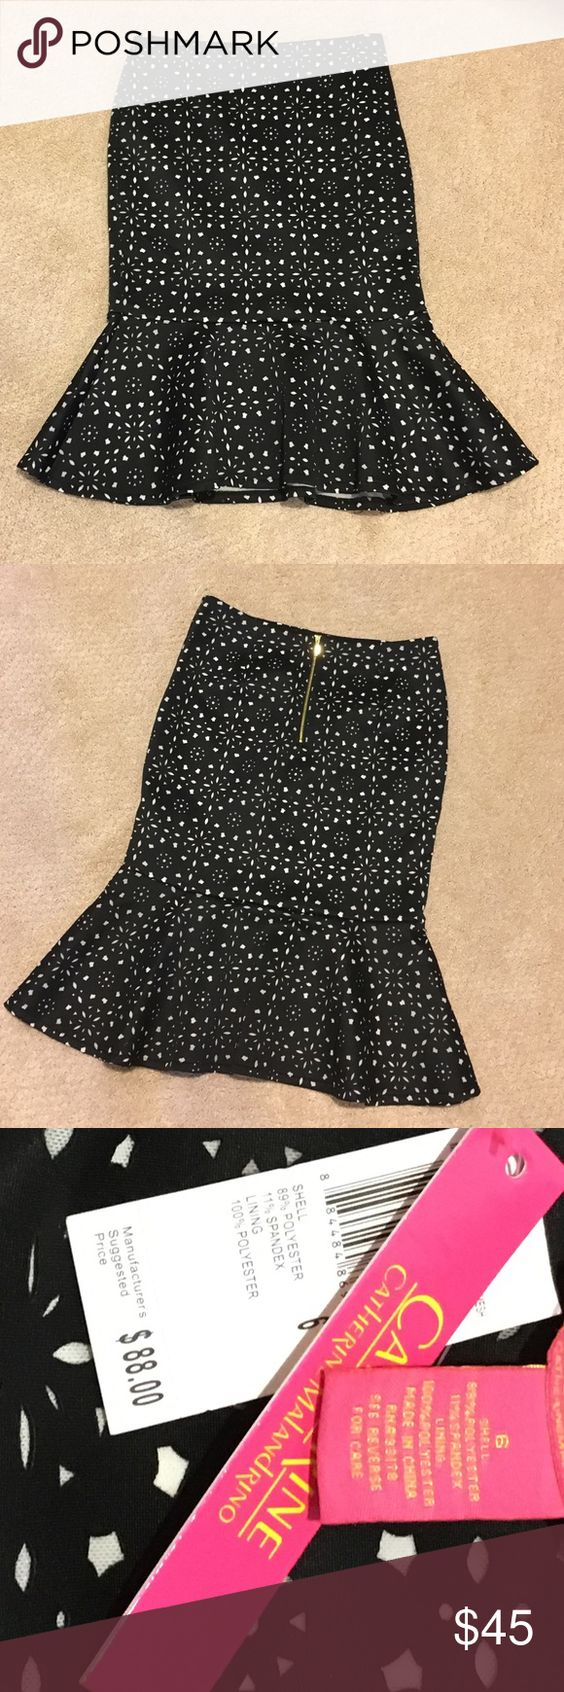 Skirt Take a second l👀k‼️ a must have beautiful pencil skirt with a flared bottom is amazing. The pattern is a cut out black fabric on top of a white giving this a detailed effect. New with tags Catherine Malandrino Skirts Pencil